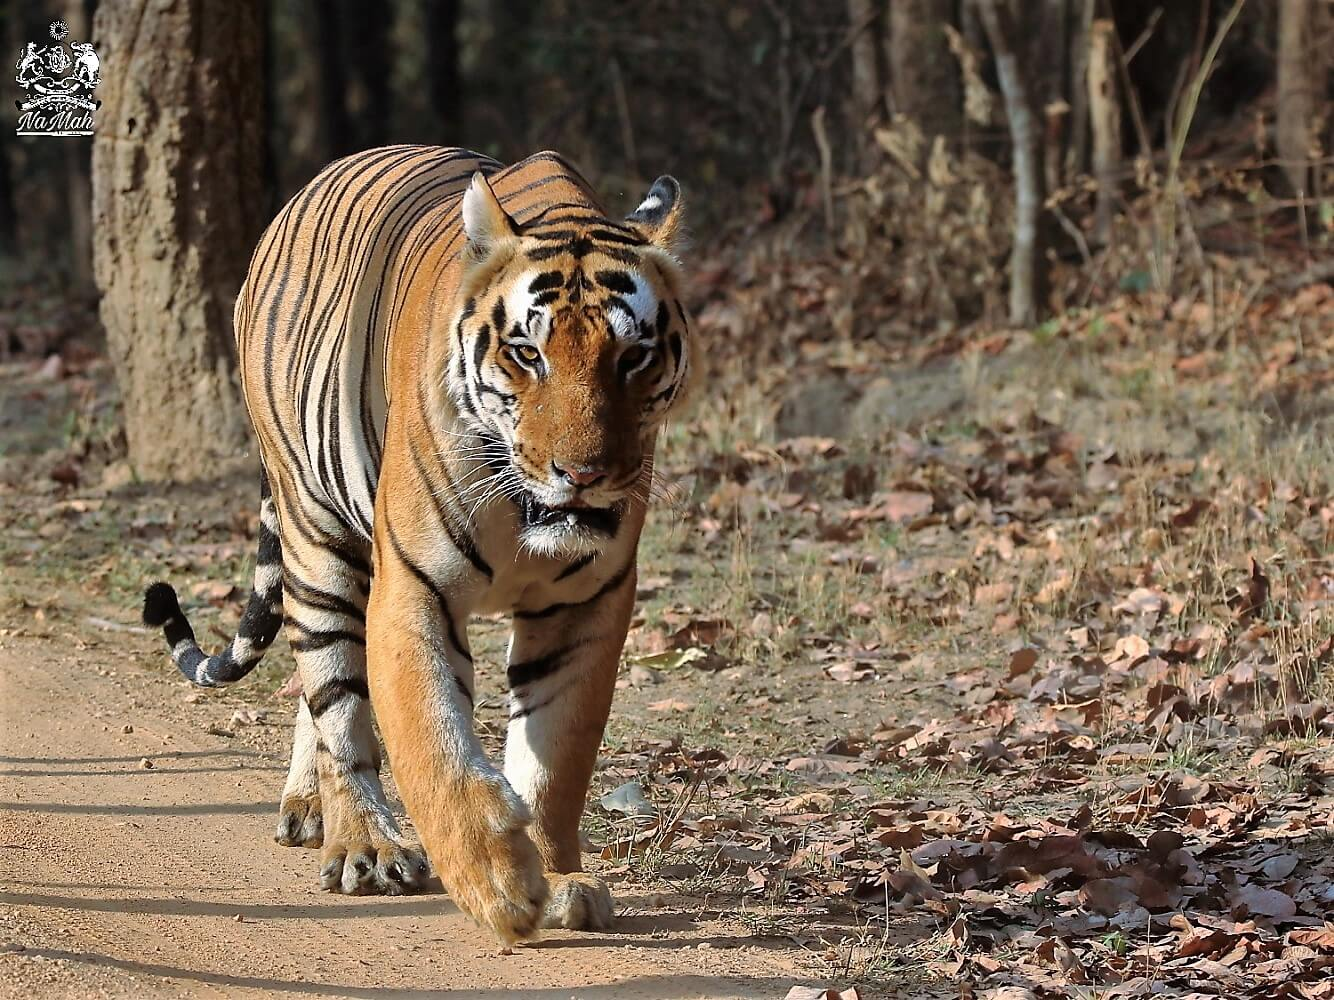 Chota Munna Tiger of Kanha walking on safari road